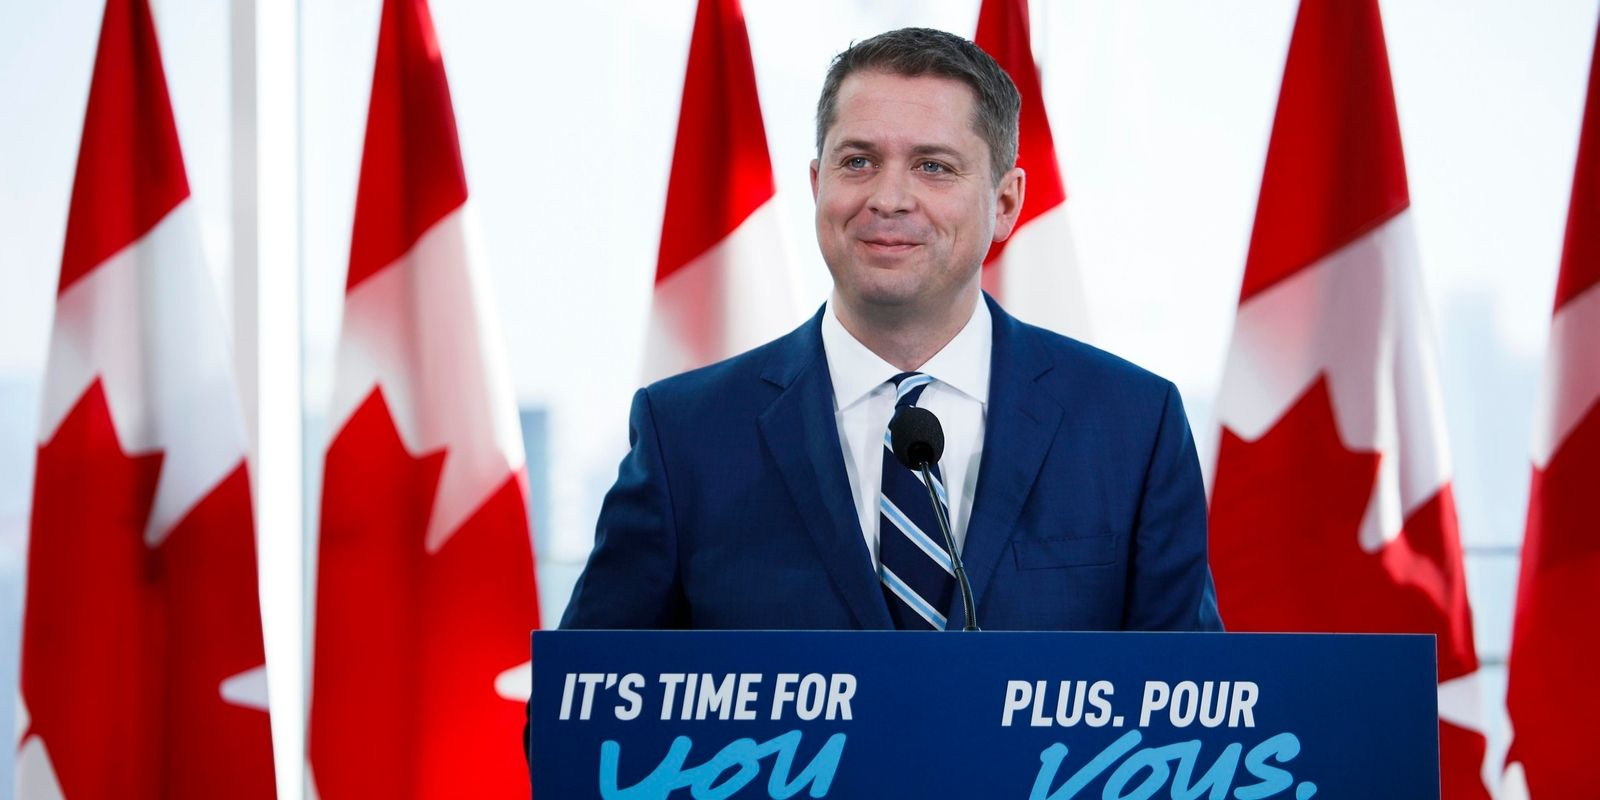 Conservative Party spending plans released, outlines cuts to balance budget over five-year period